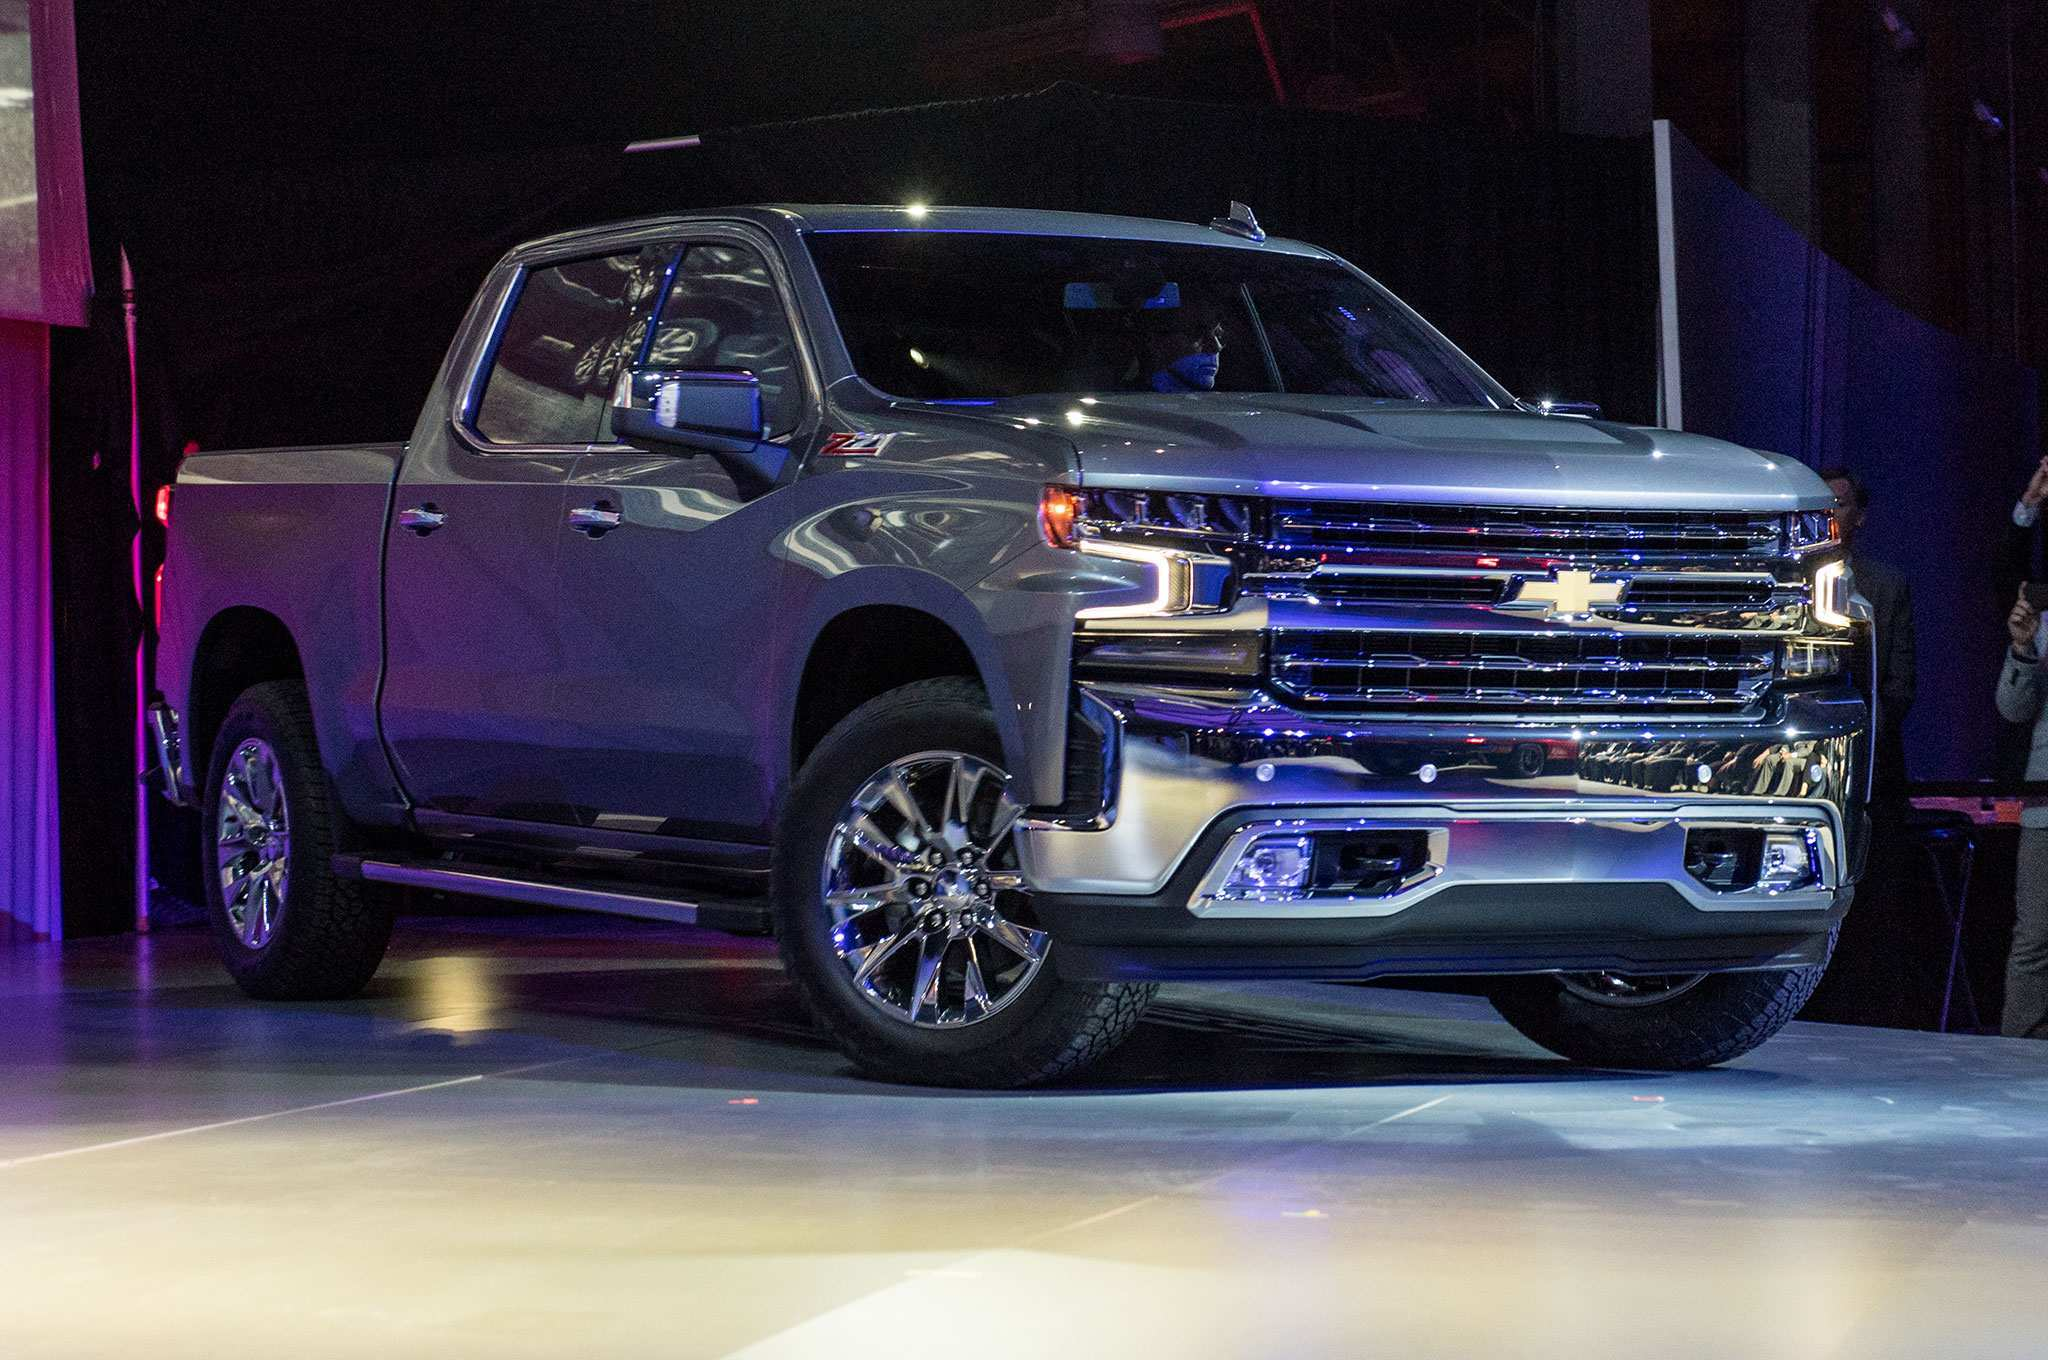 16 All New 2019 Chevy Silverado Hd Images